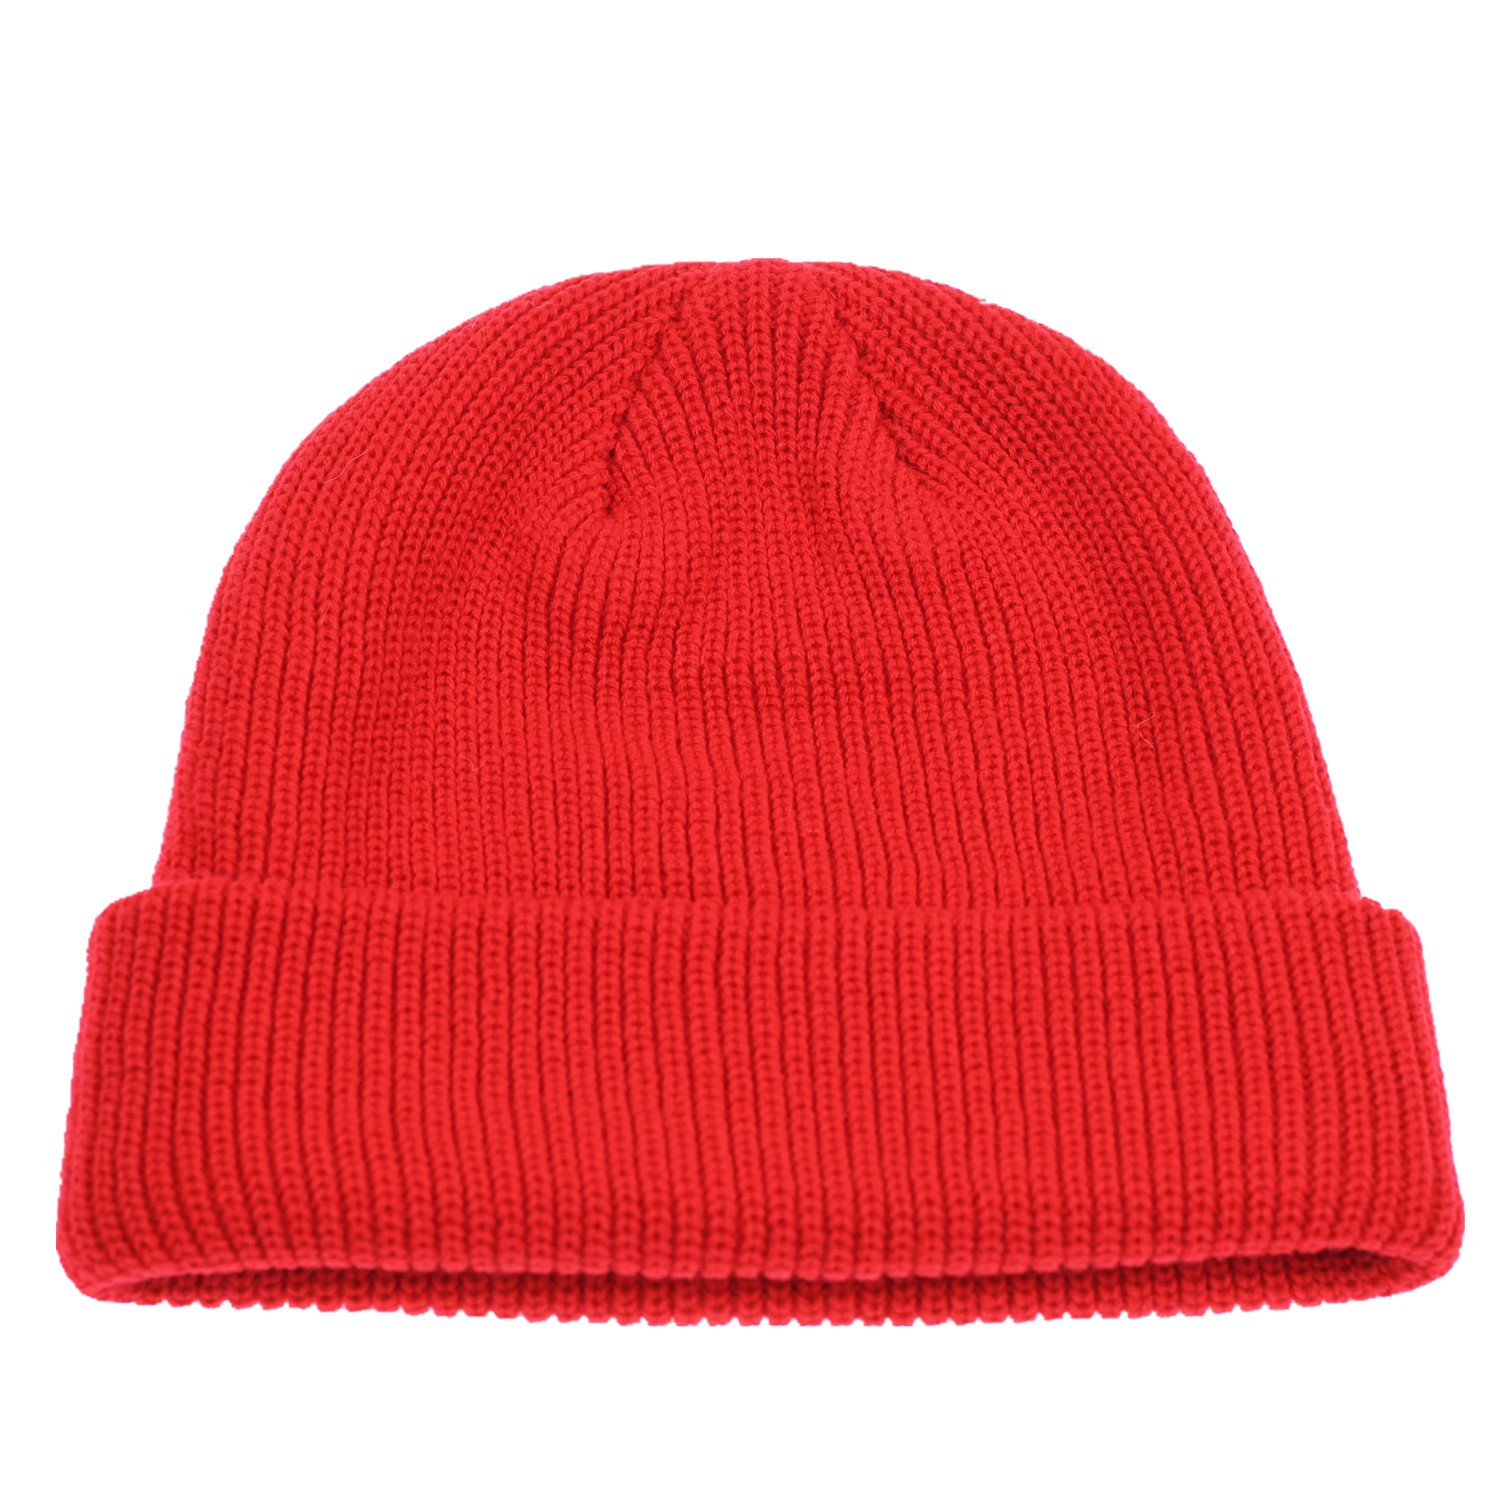 5093c3b94b1 Connectyle Outdoor Classic Bassic Men  s Warm Winter Hats Daily Thick Knit  Cuff Beanie Cap Red